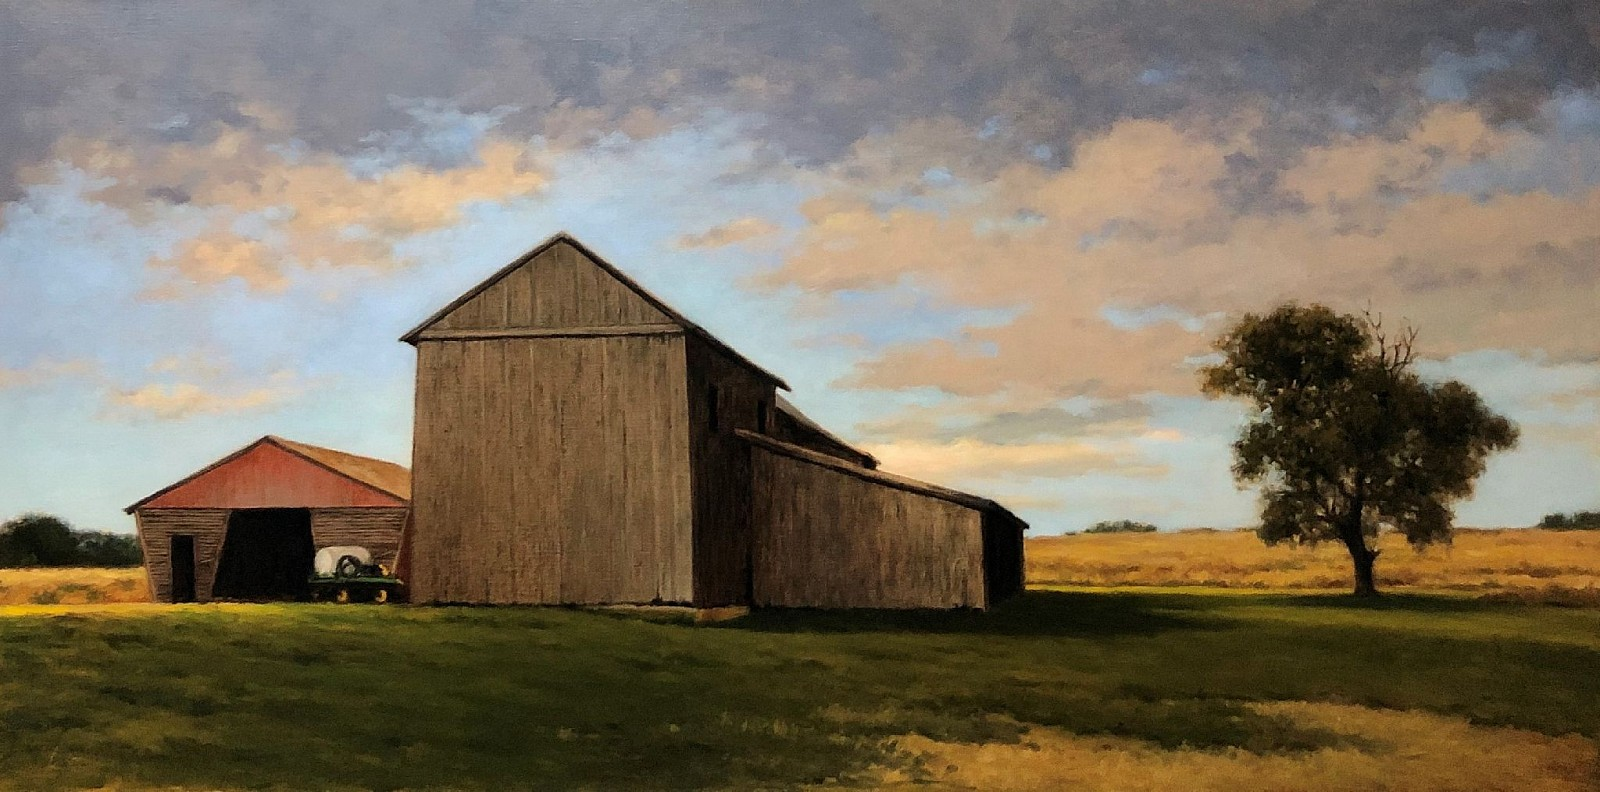 David Peikon ,   Janelia Barns  ,  2016     oil on linen ,  24 x 48 in. (61 x 121.9 cm)     DP200110